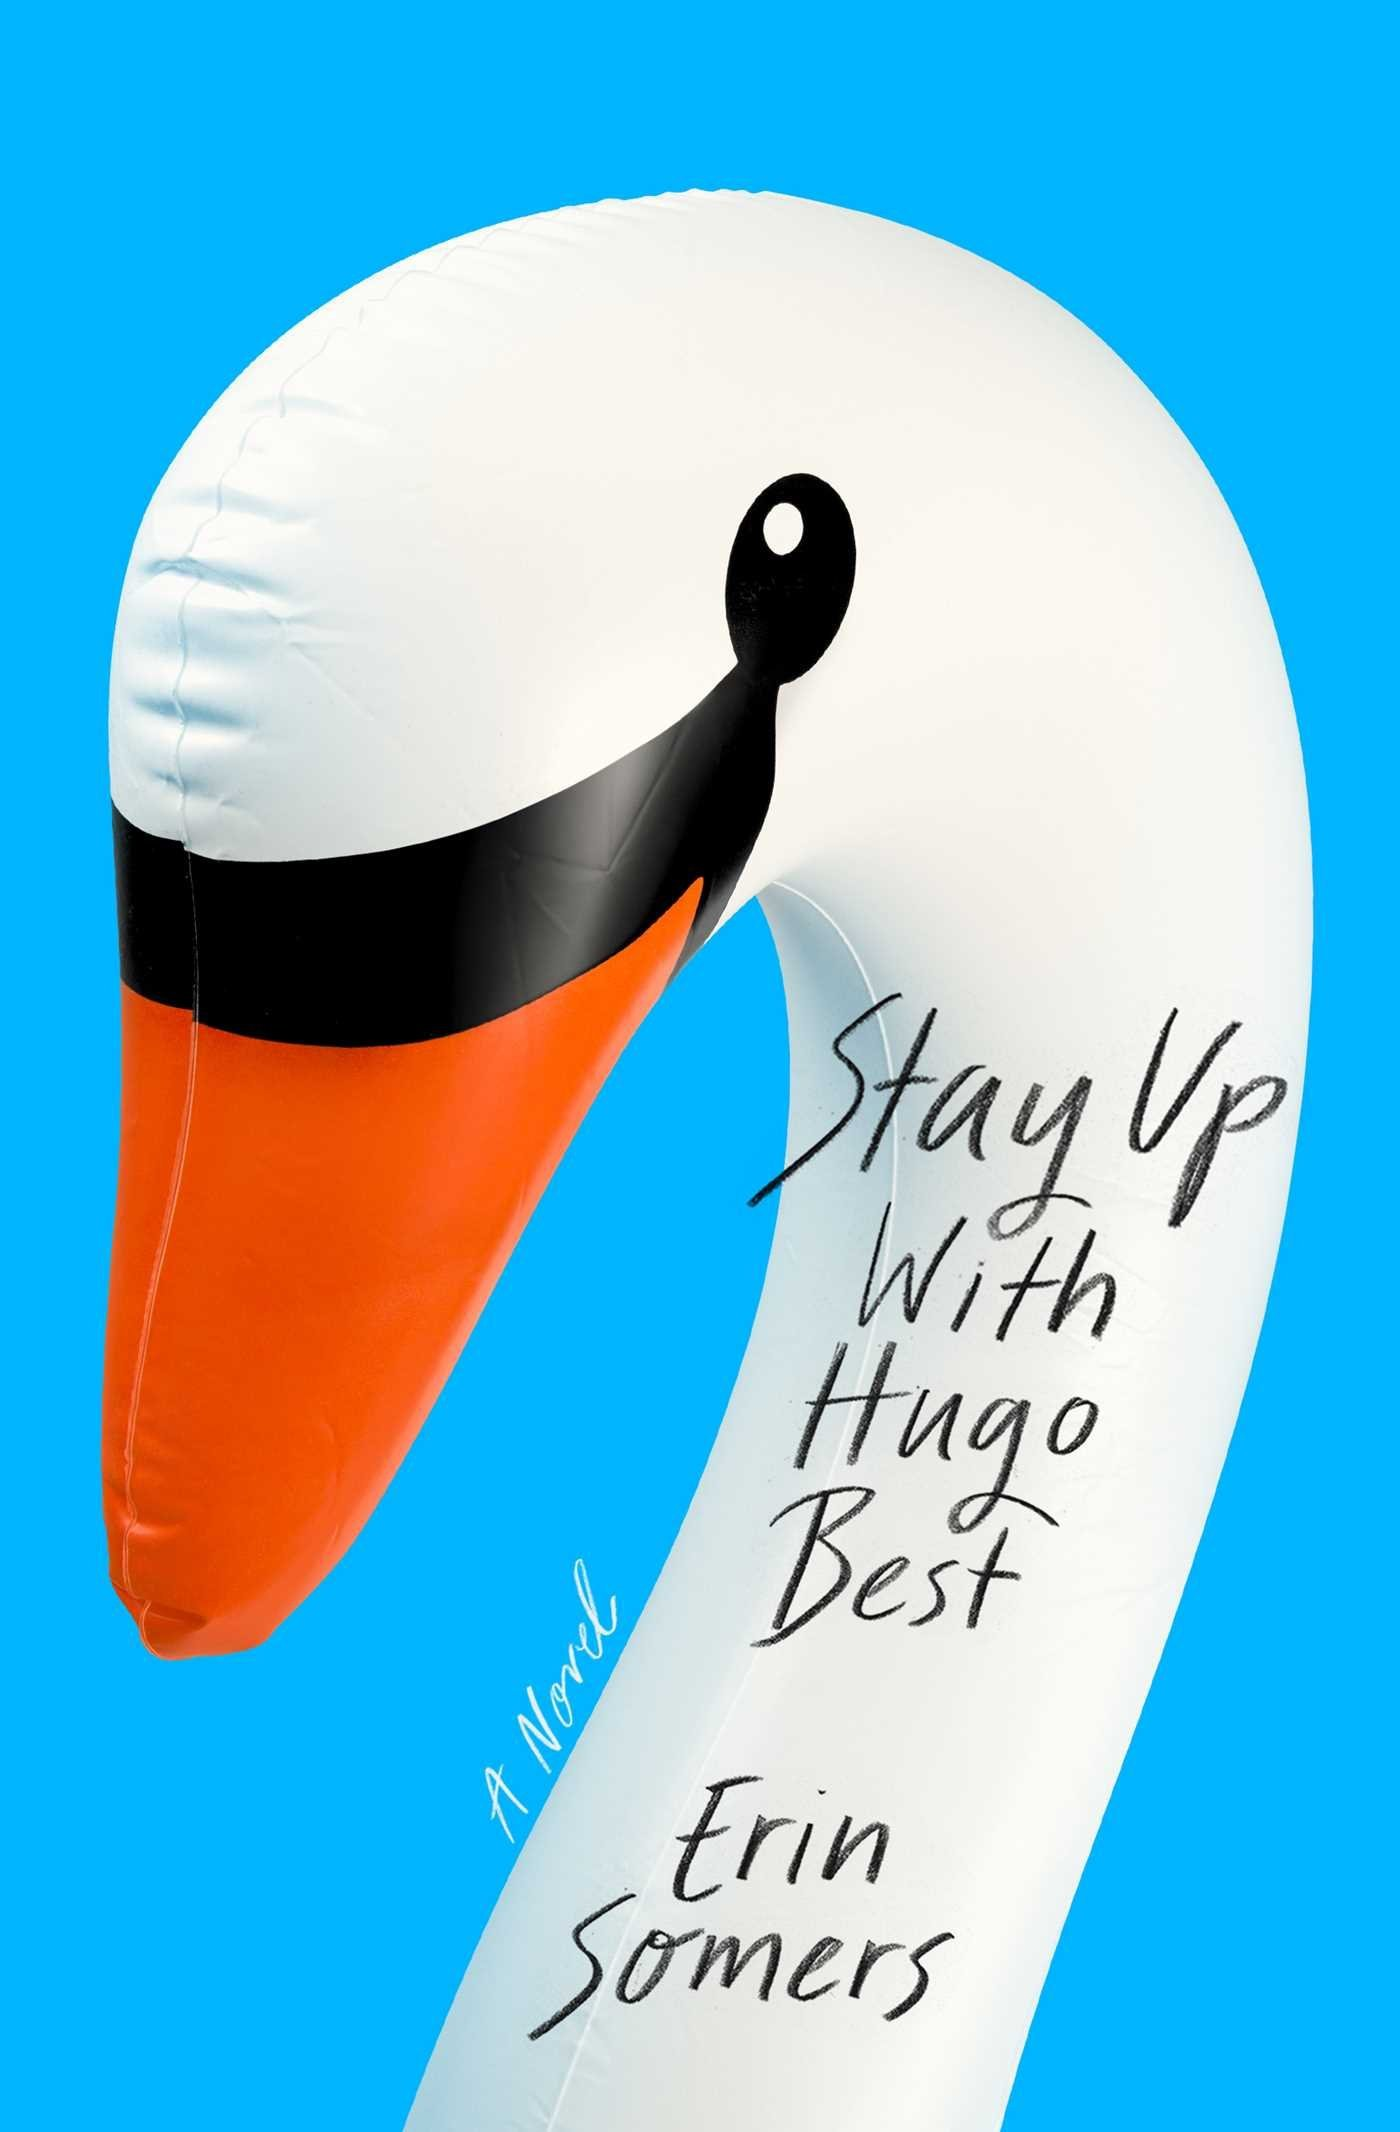 Image result for stay up with hugo best